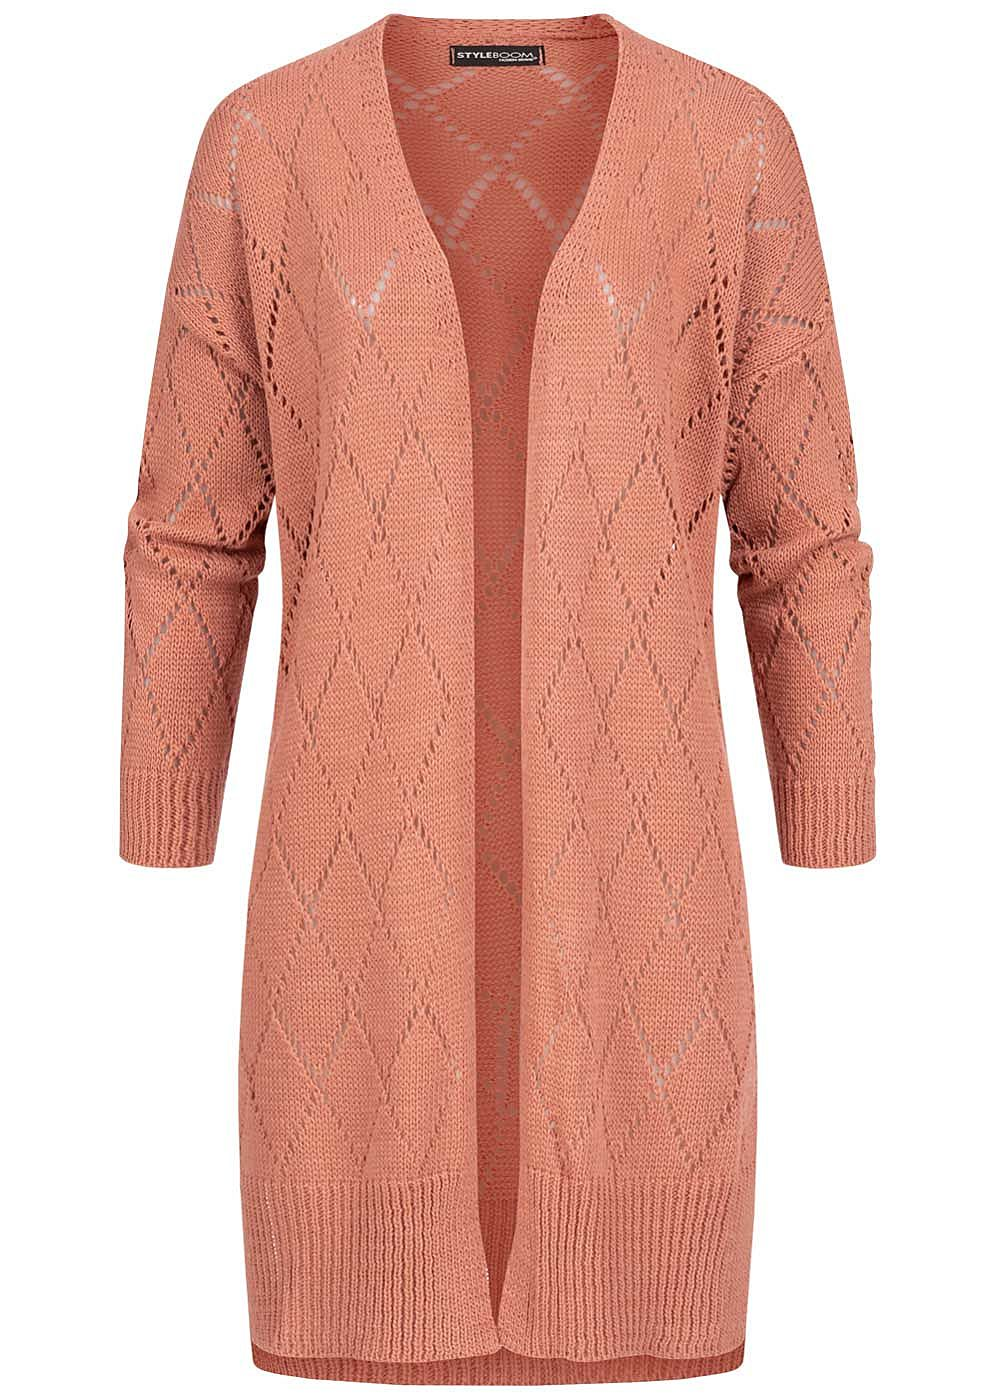 Styleboom Fashion Damen Longform Strickcardigan Rauten Muster wood rosa - Art.-Nr.: 20086291